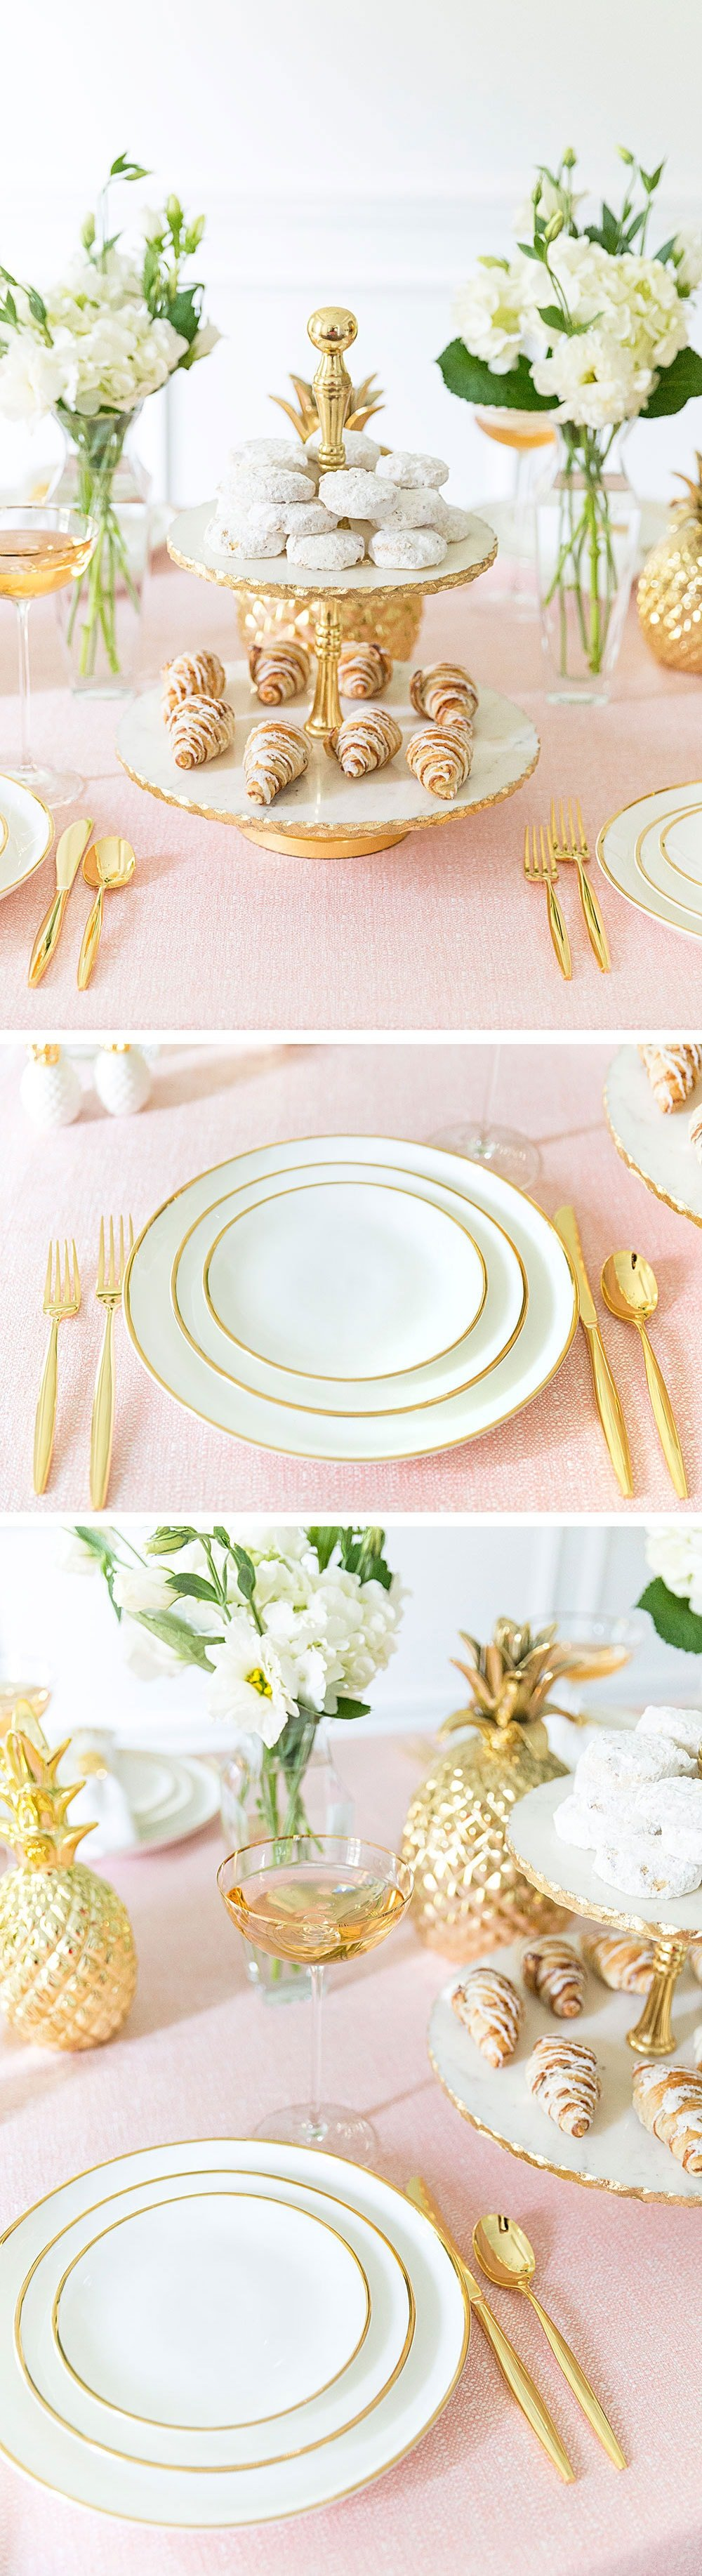 Gorgeous dreamy pink party tablescape